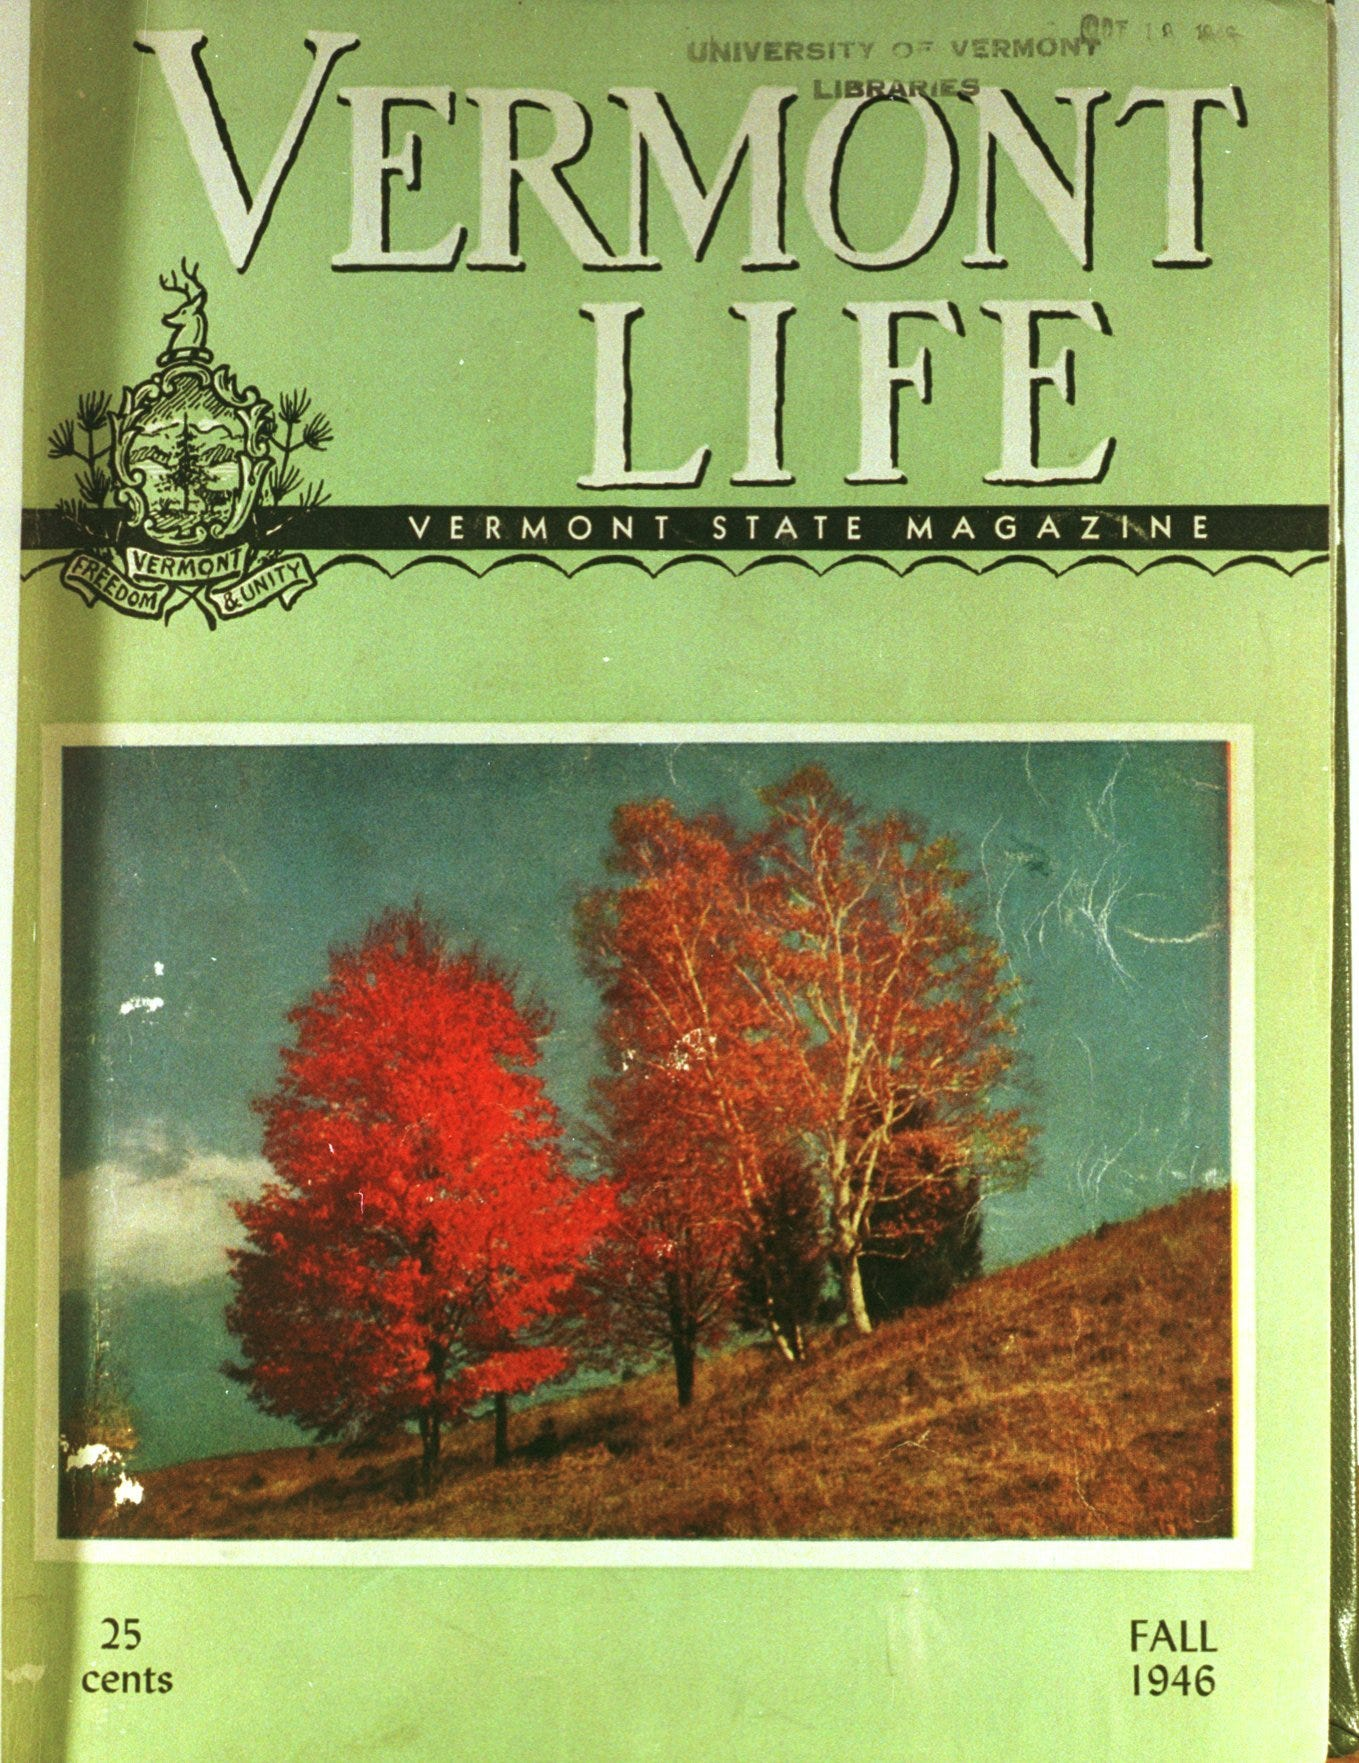 Vermont Life to cease printing after 72 years, iconic magazine helped lure tourists | USA Today